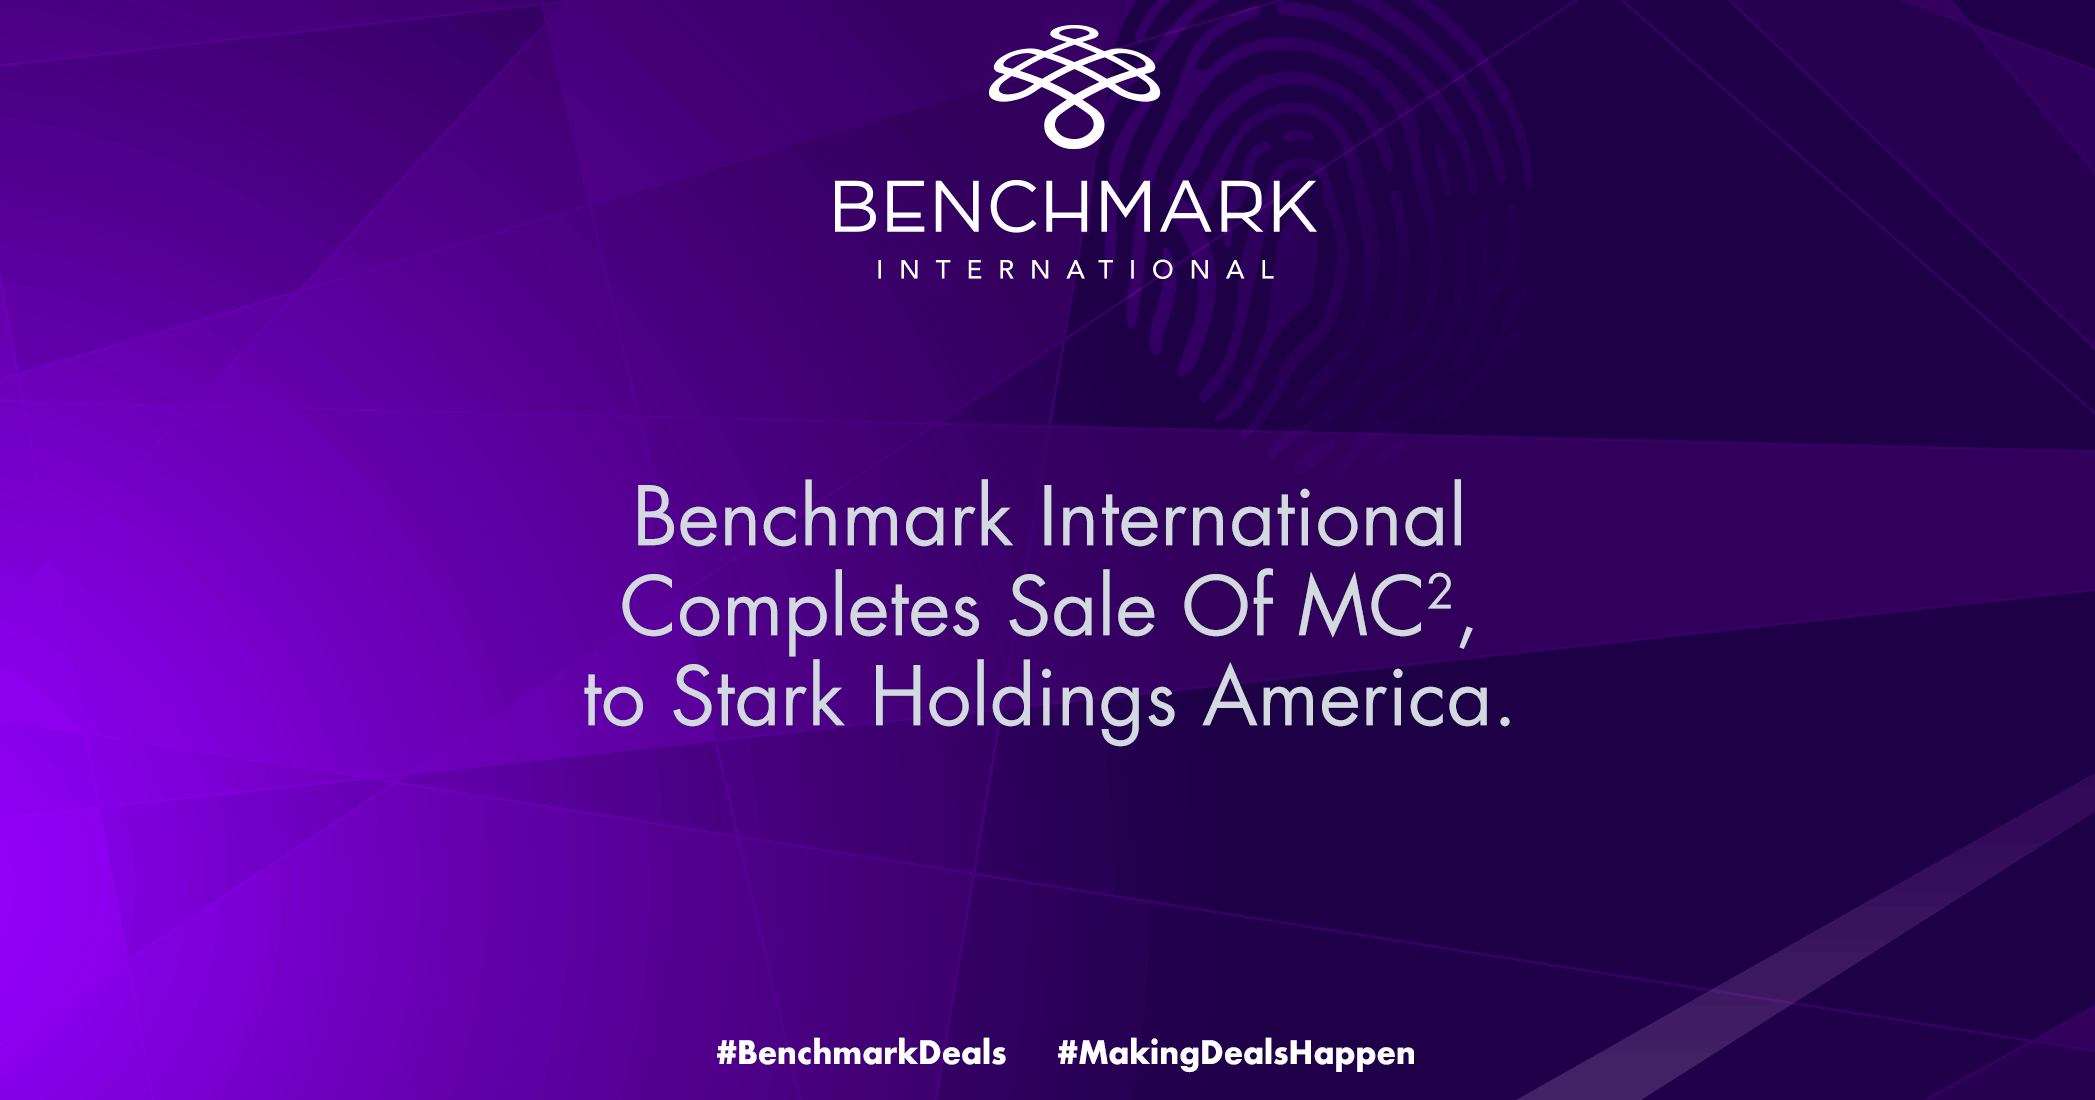 Benchmark International completes Sale of MC2, INC to Stark Holdings America, INC.